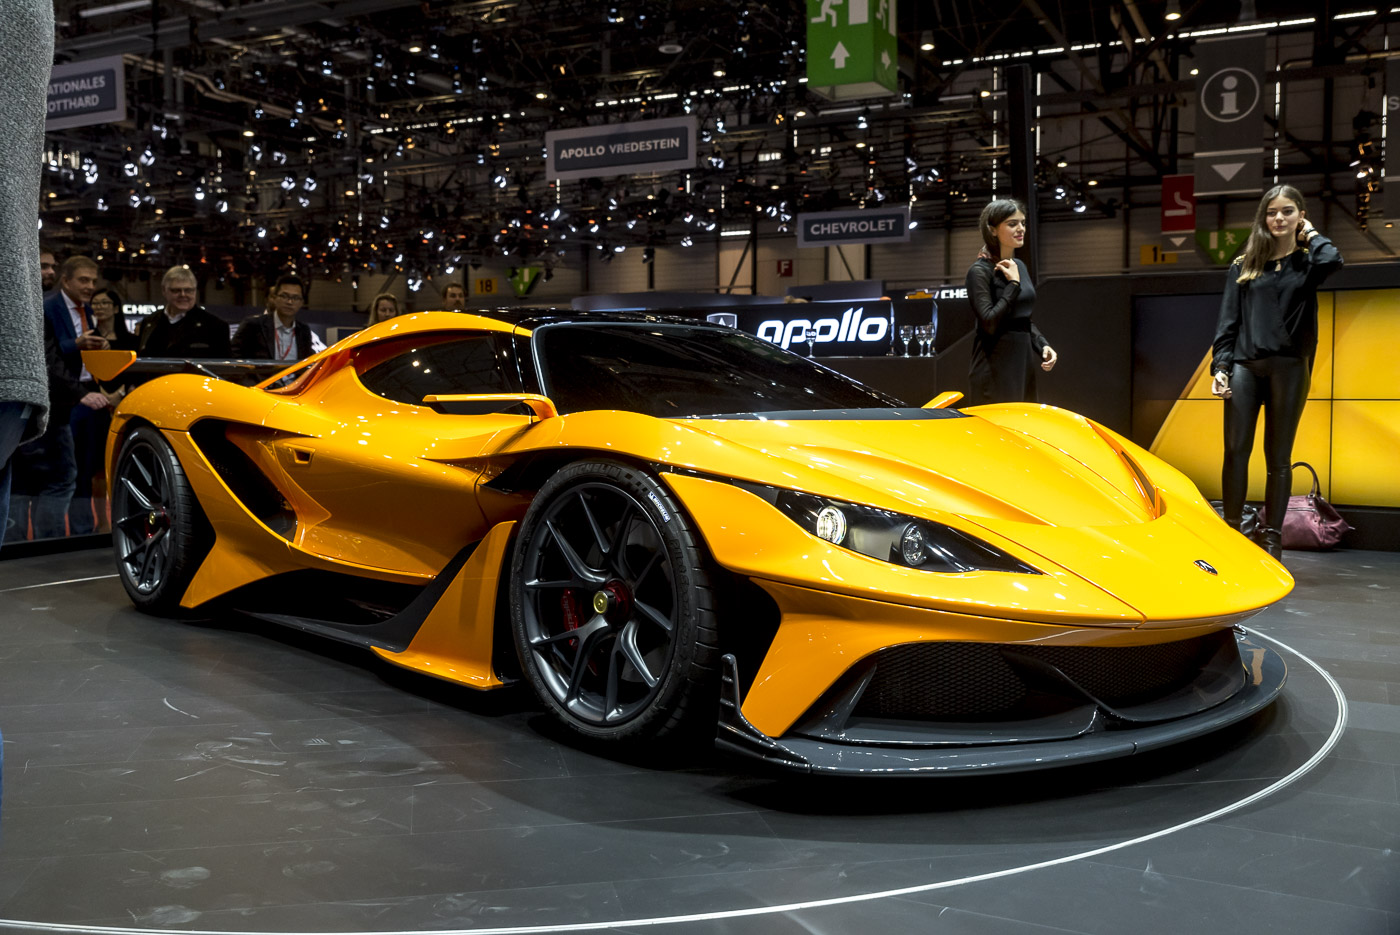 Lamborghini Aventador Cars Wallpapers Geneva 2016 Apollo Arrow De Return Of Gumpert